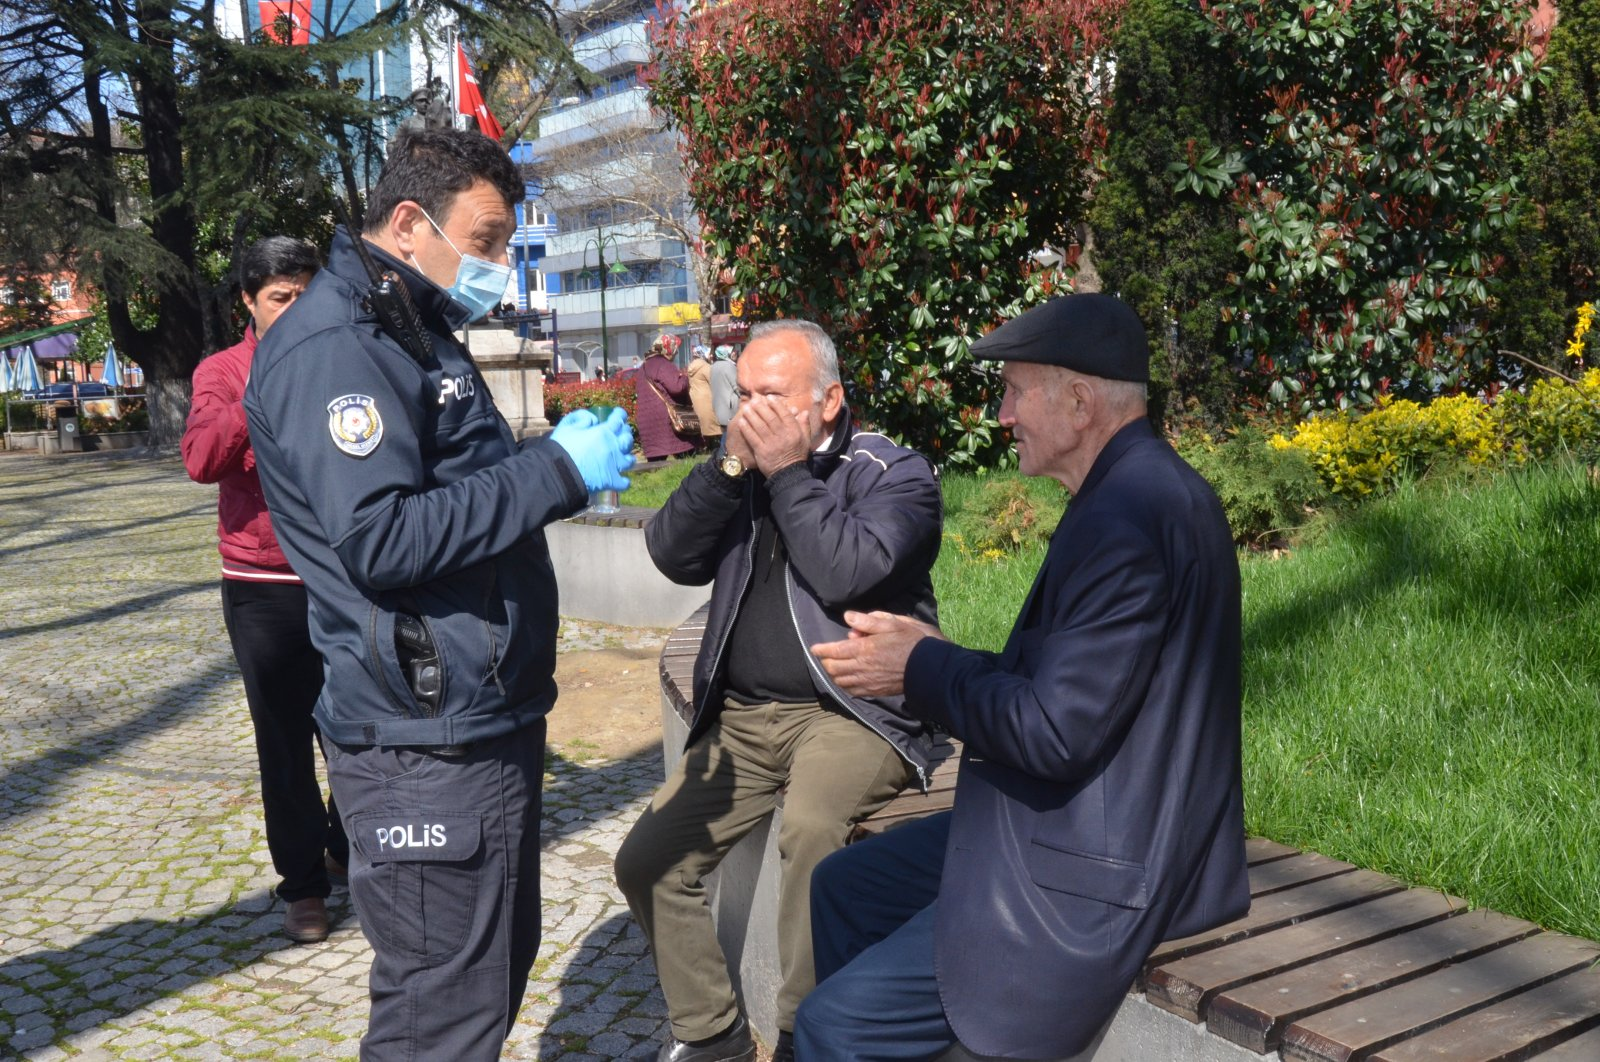 Police officer in Turkey's Zongulak offers elderly Turkish cologne and tells them that they are supposed to be at home, offers ride home, March 21, 2020. (IHA Photo)